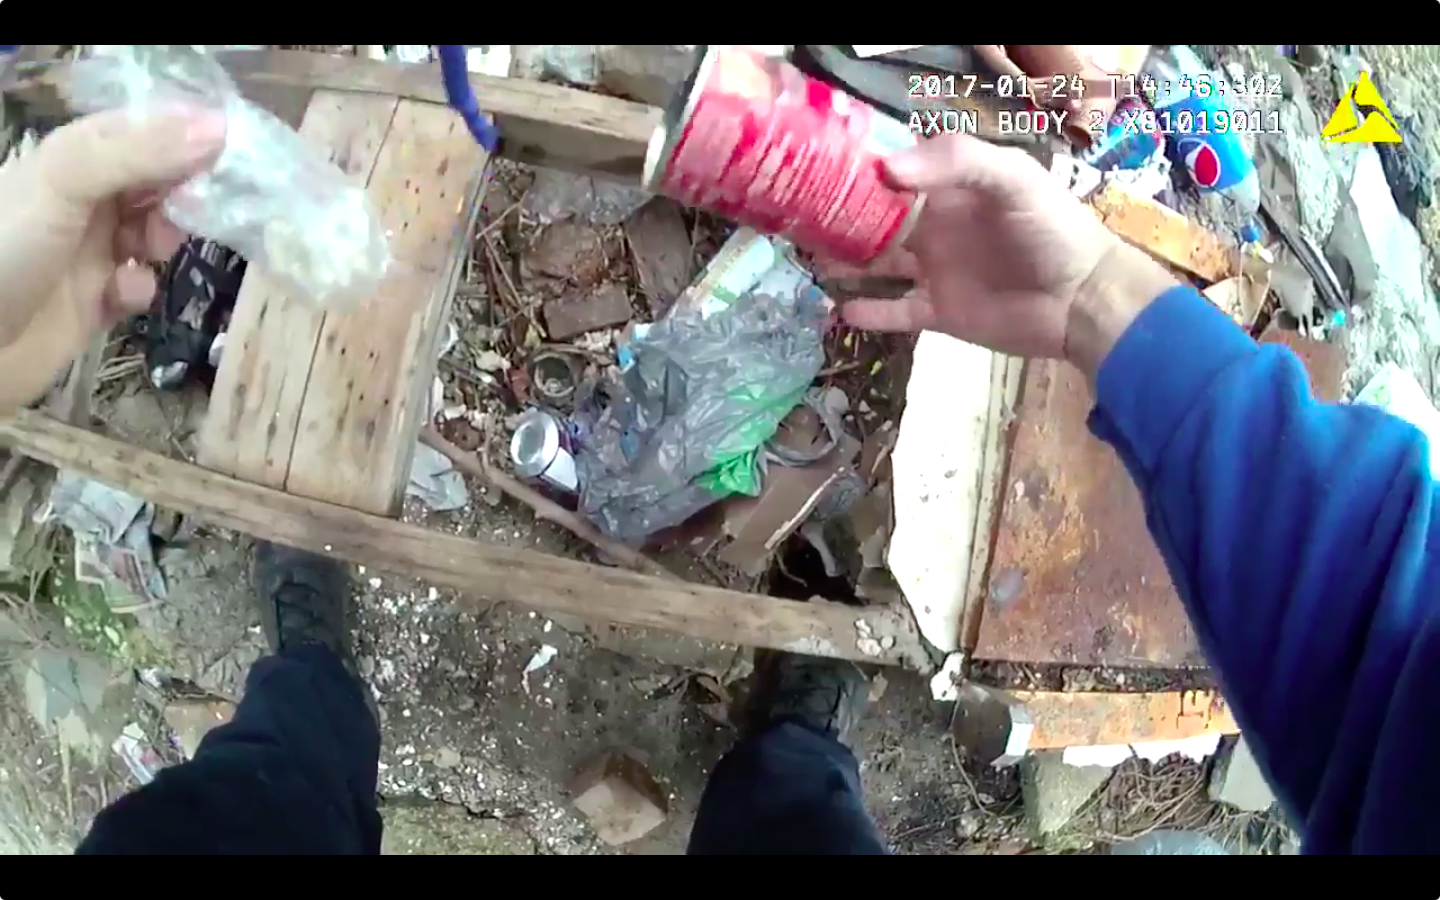 Accused dirty cop appears to be caught planting drugs in Baltimore